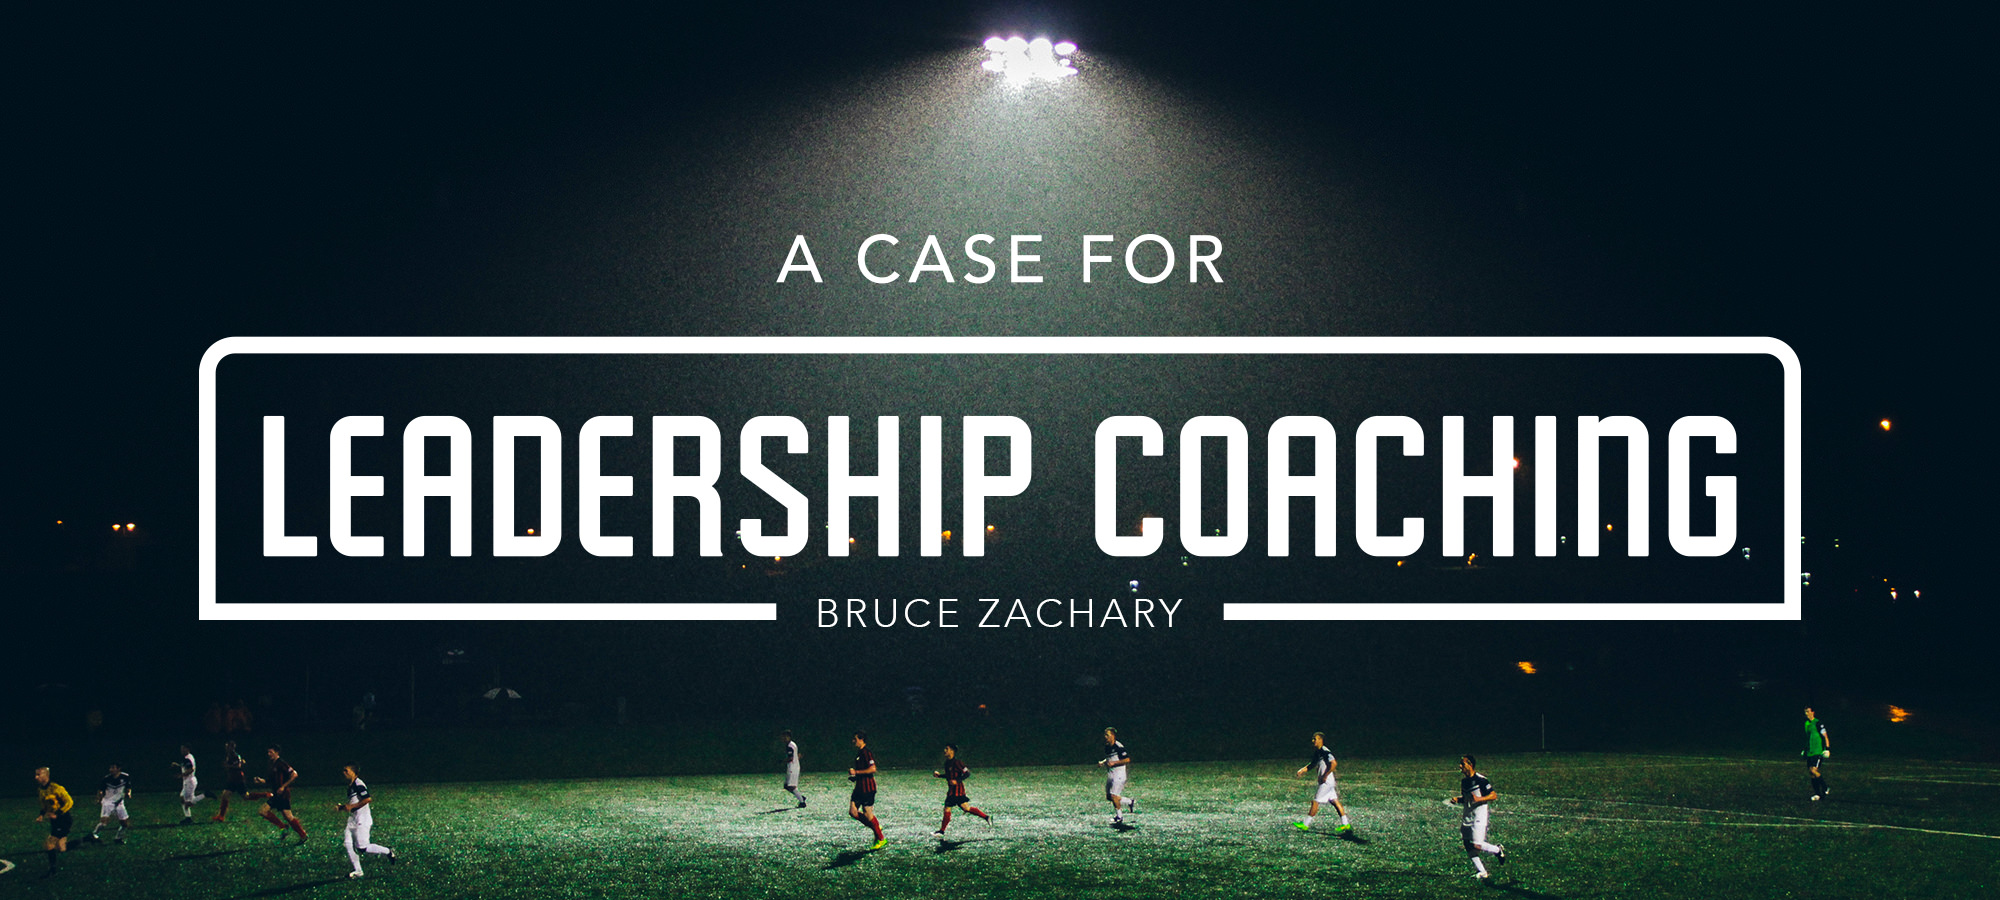 A Case for Leadership Coaching